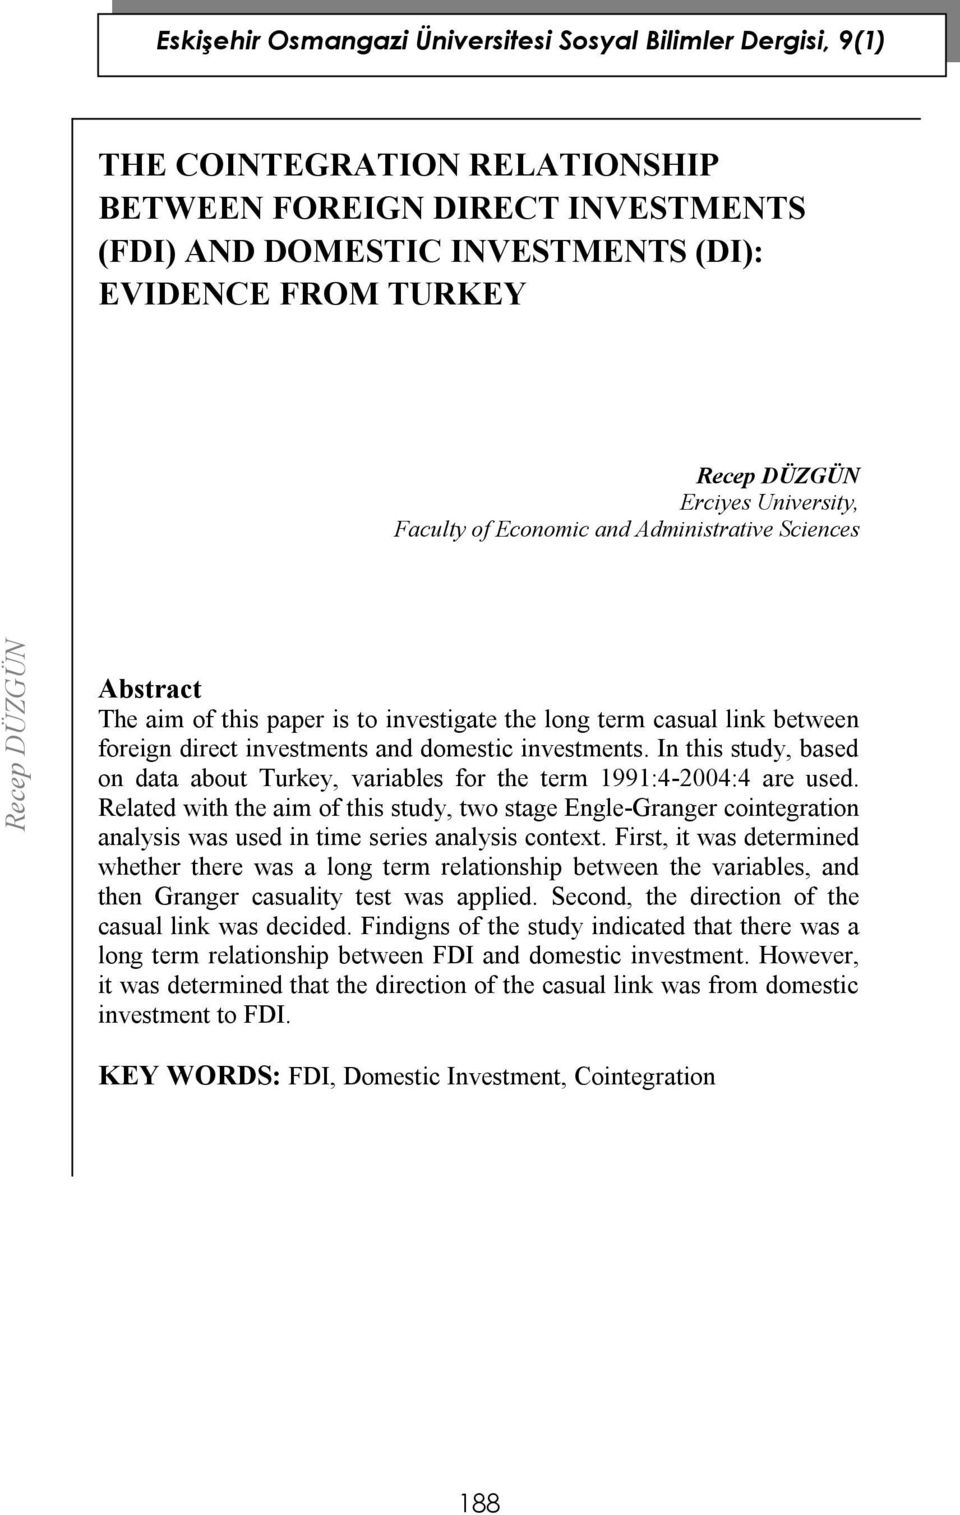 In this study, based on data about Turkey, variables for the term 1991:4-2004:4 are used.